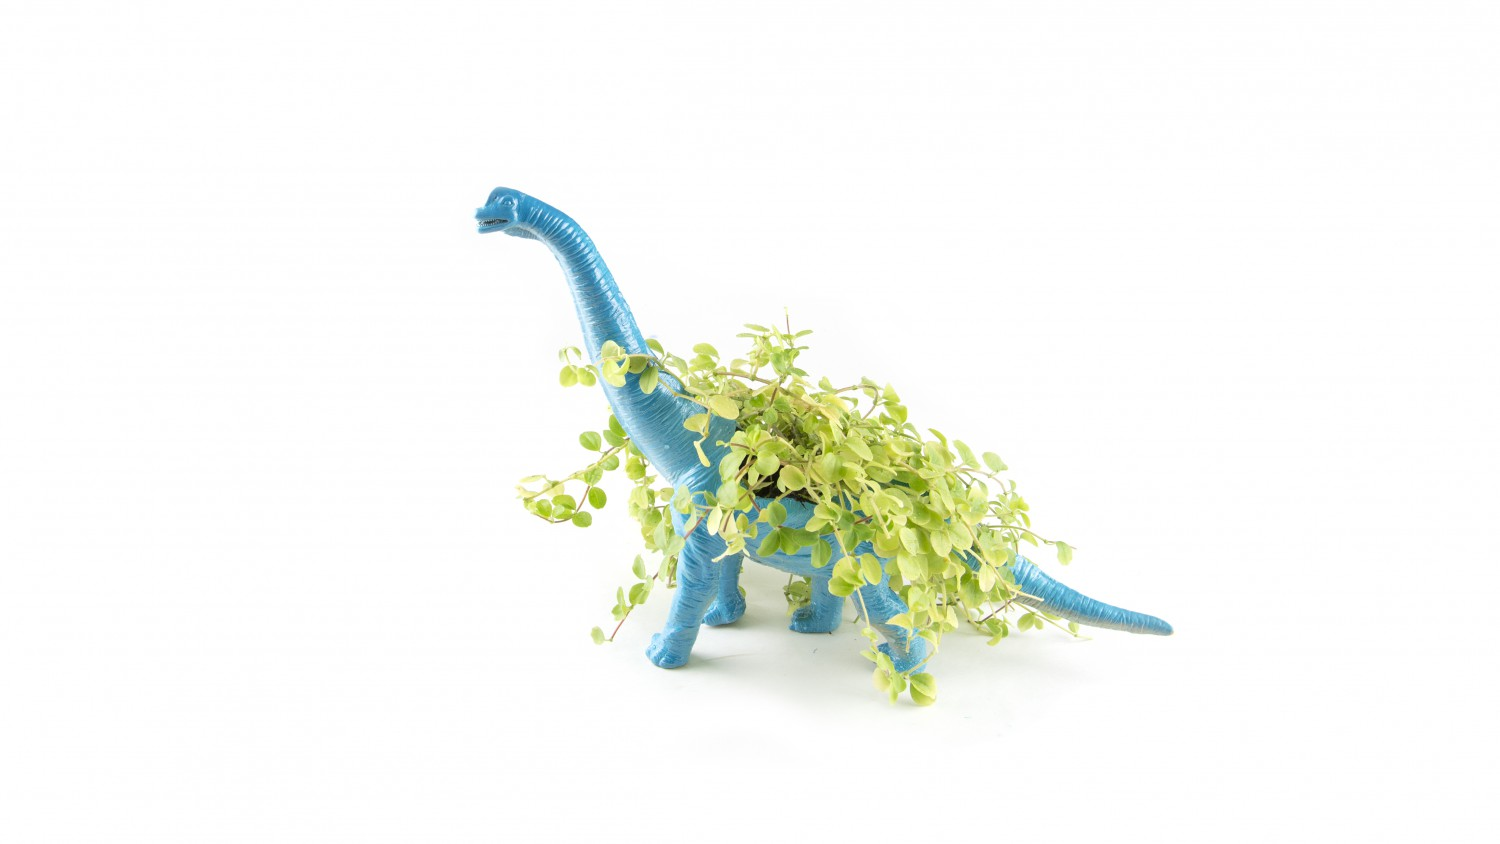 Lucka 9: Dino Planter